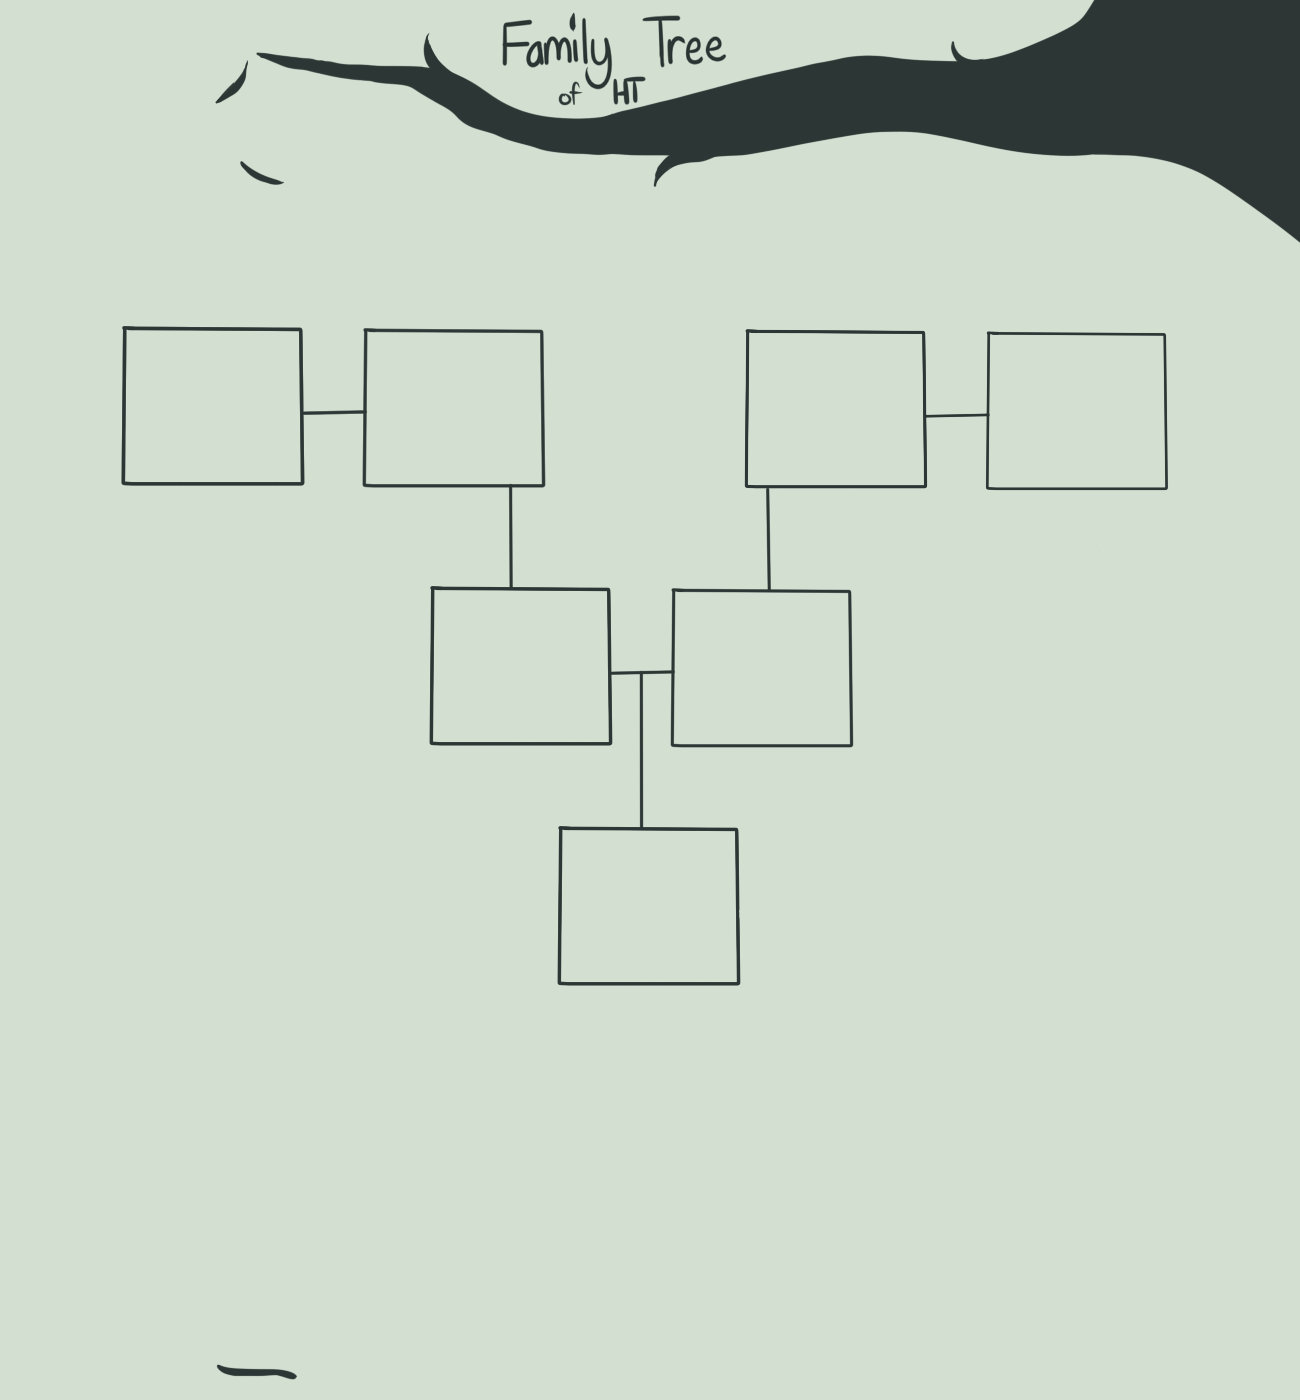 Ht family tree template by pettybluez on deviantart ht family tree template by pettybluez pronofoot35fo Image collections